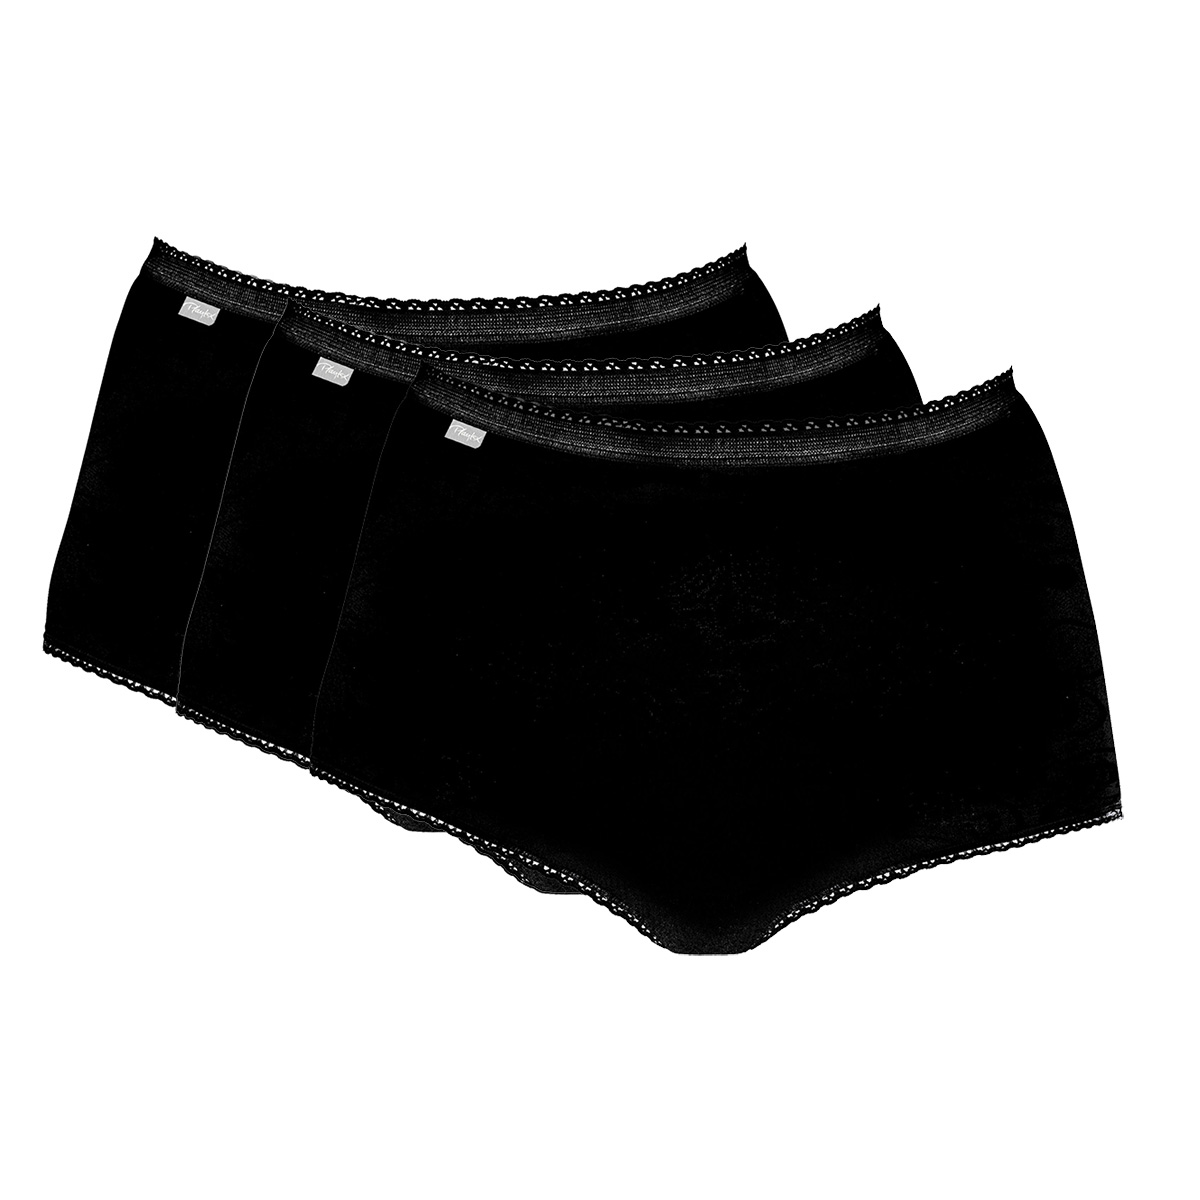 3 Cotton Maxi Briefs in black – Stretch Cotton-PLAYTEX